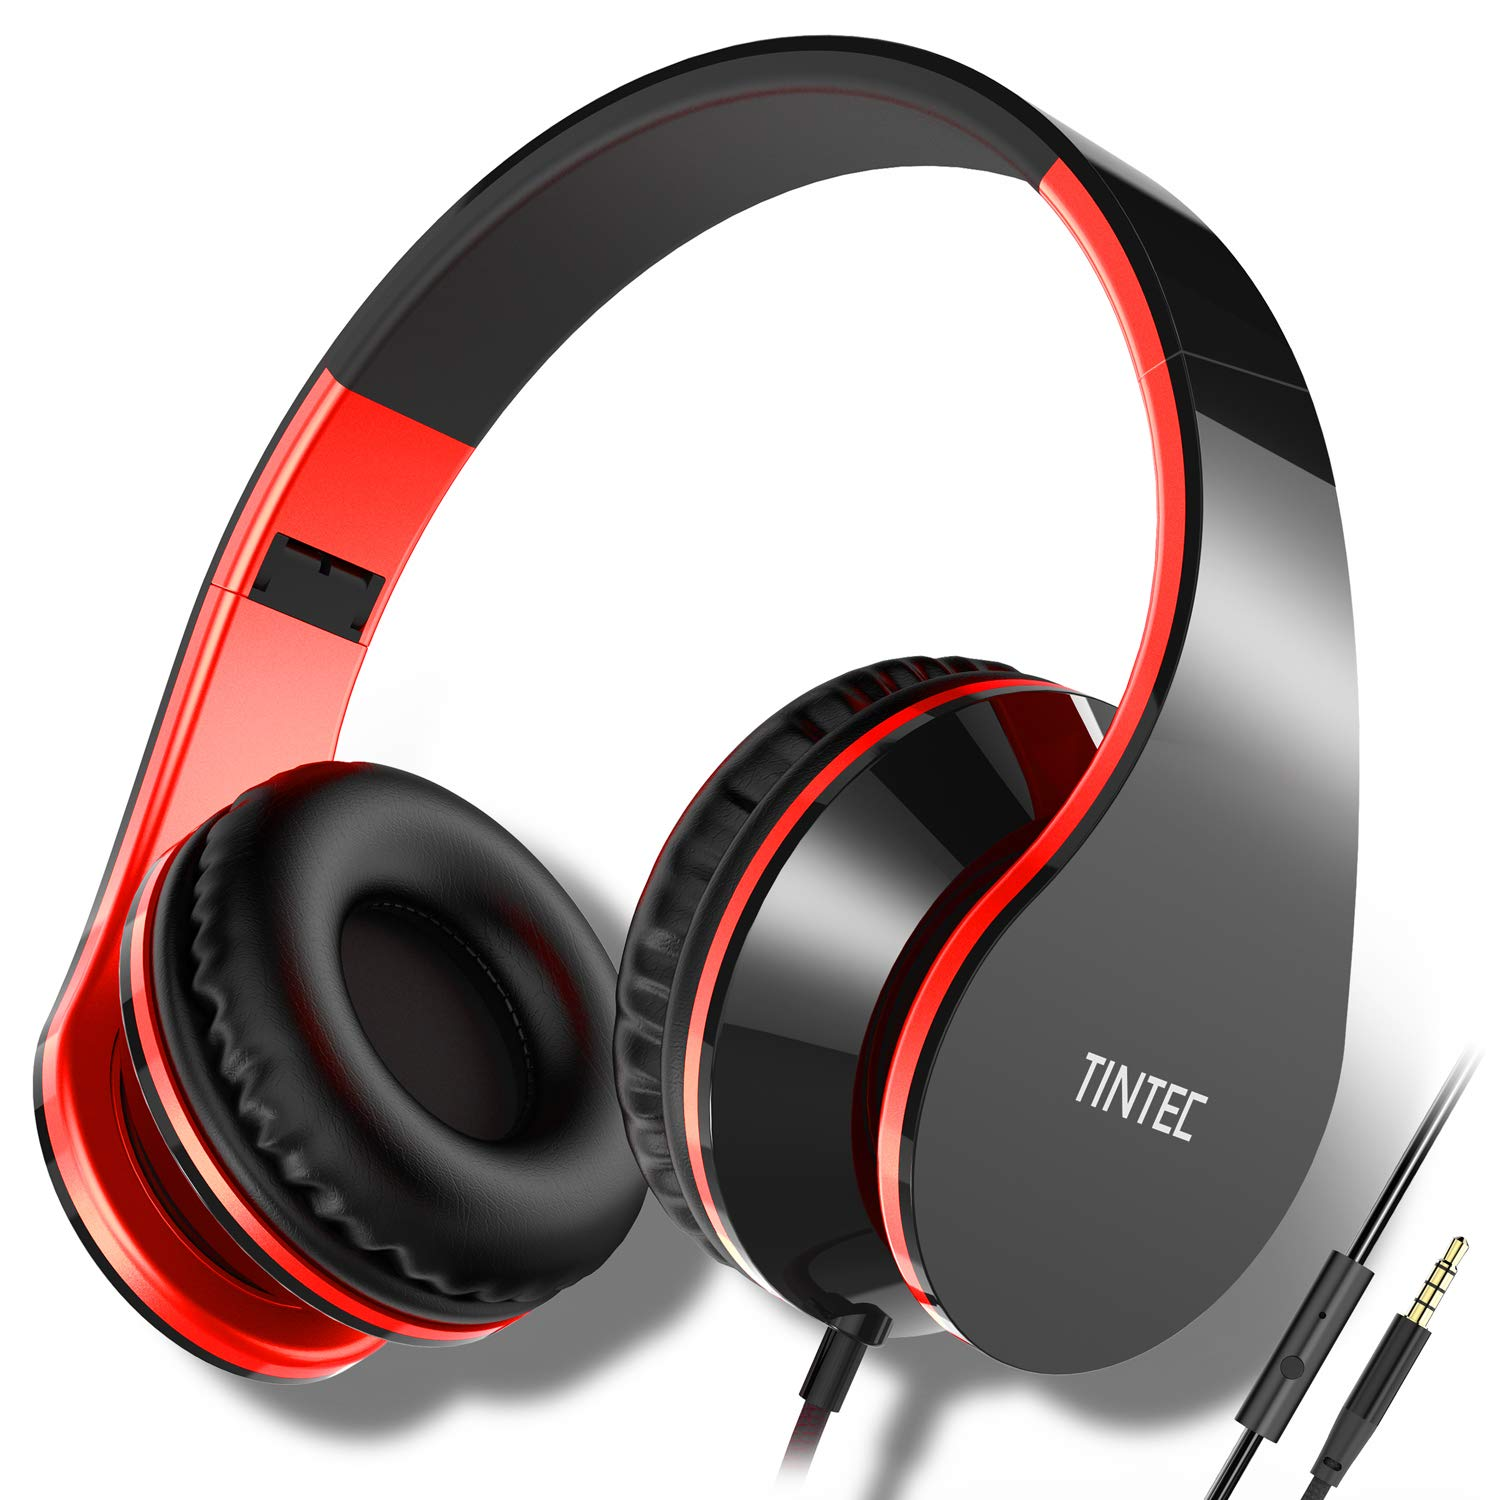 Tintec Over Ear Headphones, Wired HiFi Stereo Headset, Heavy Deep Bass, Folding Lightweight, Noise Isolation, with Built-in Mic for iPhone, iPad, Smartphone, Laptop